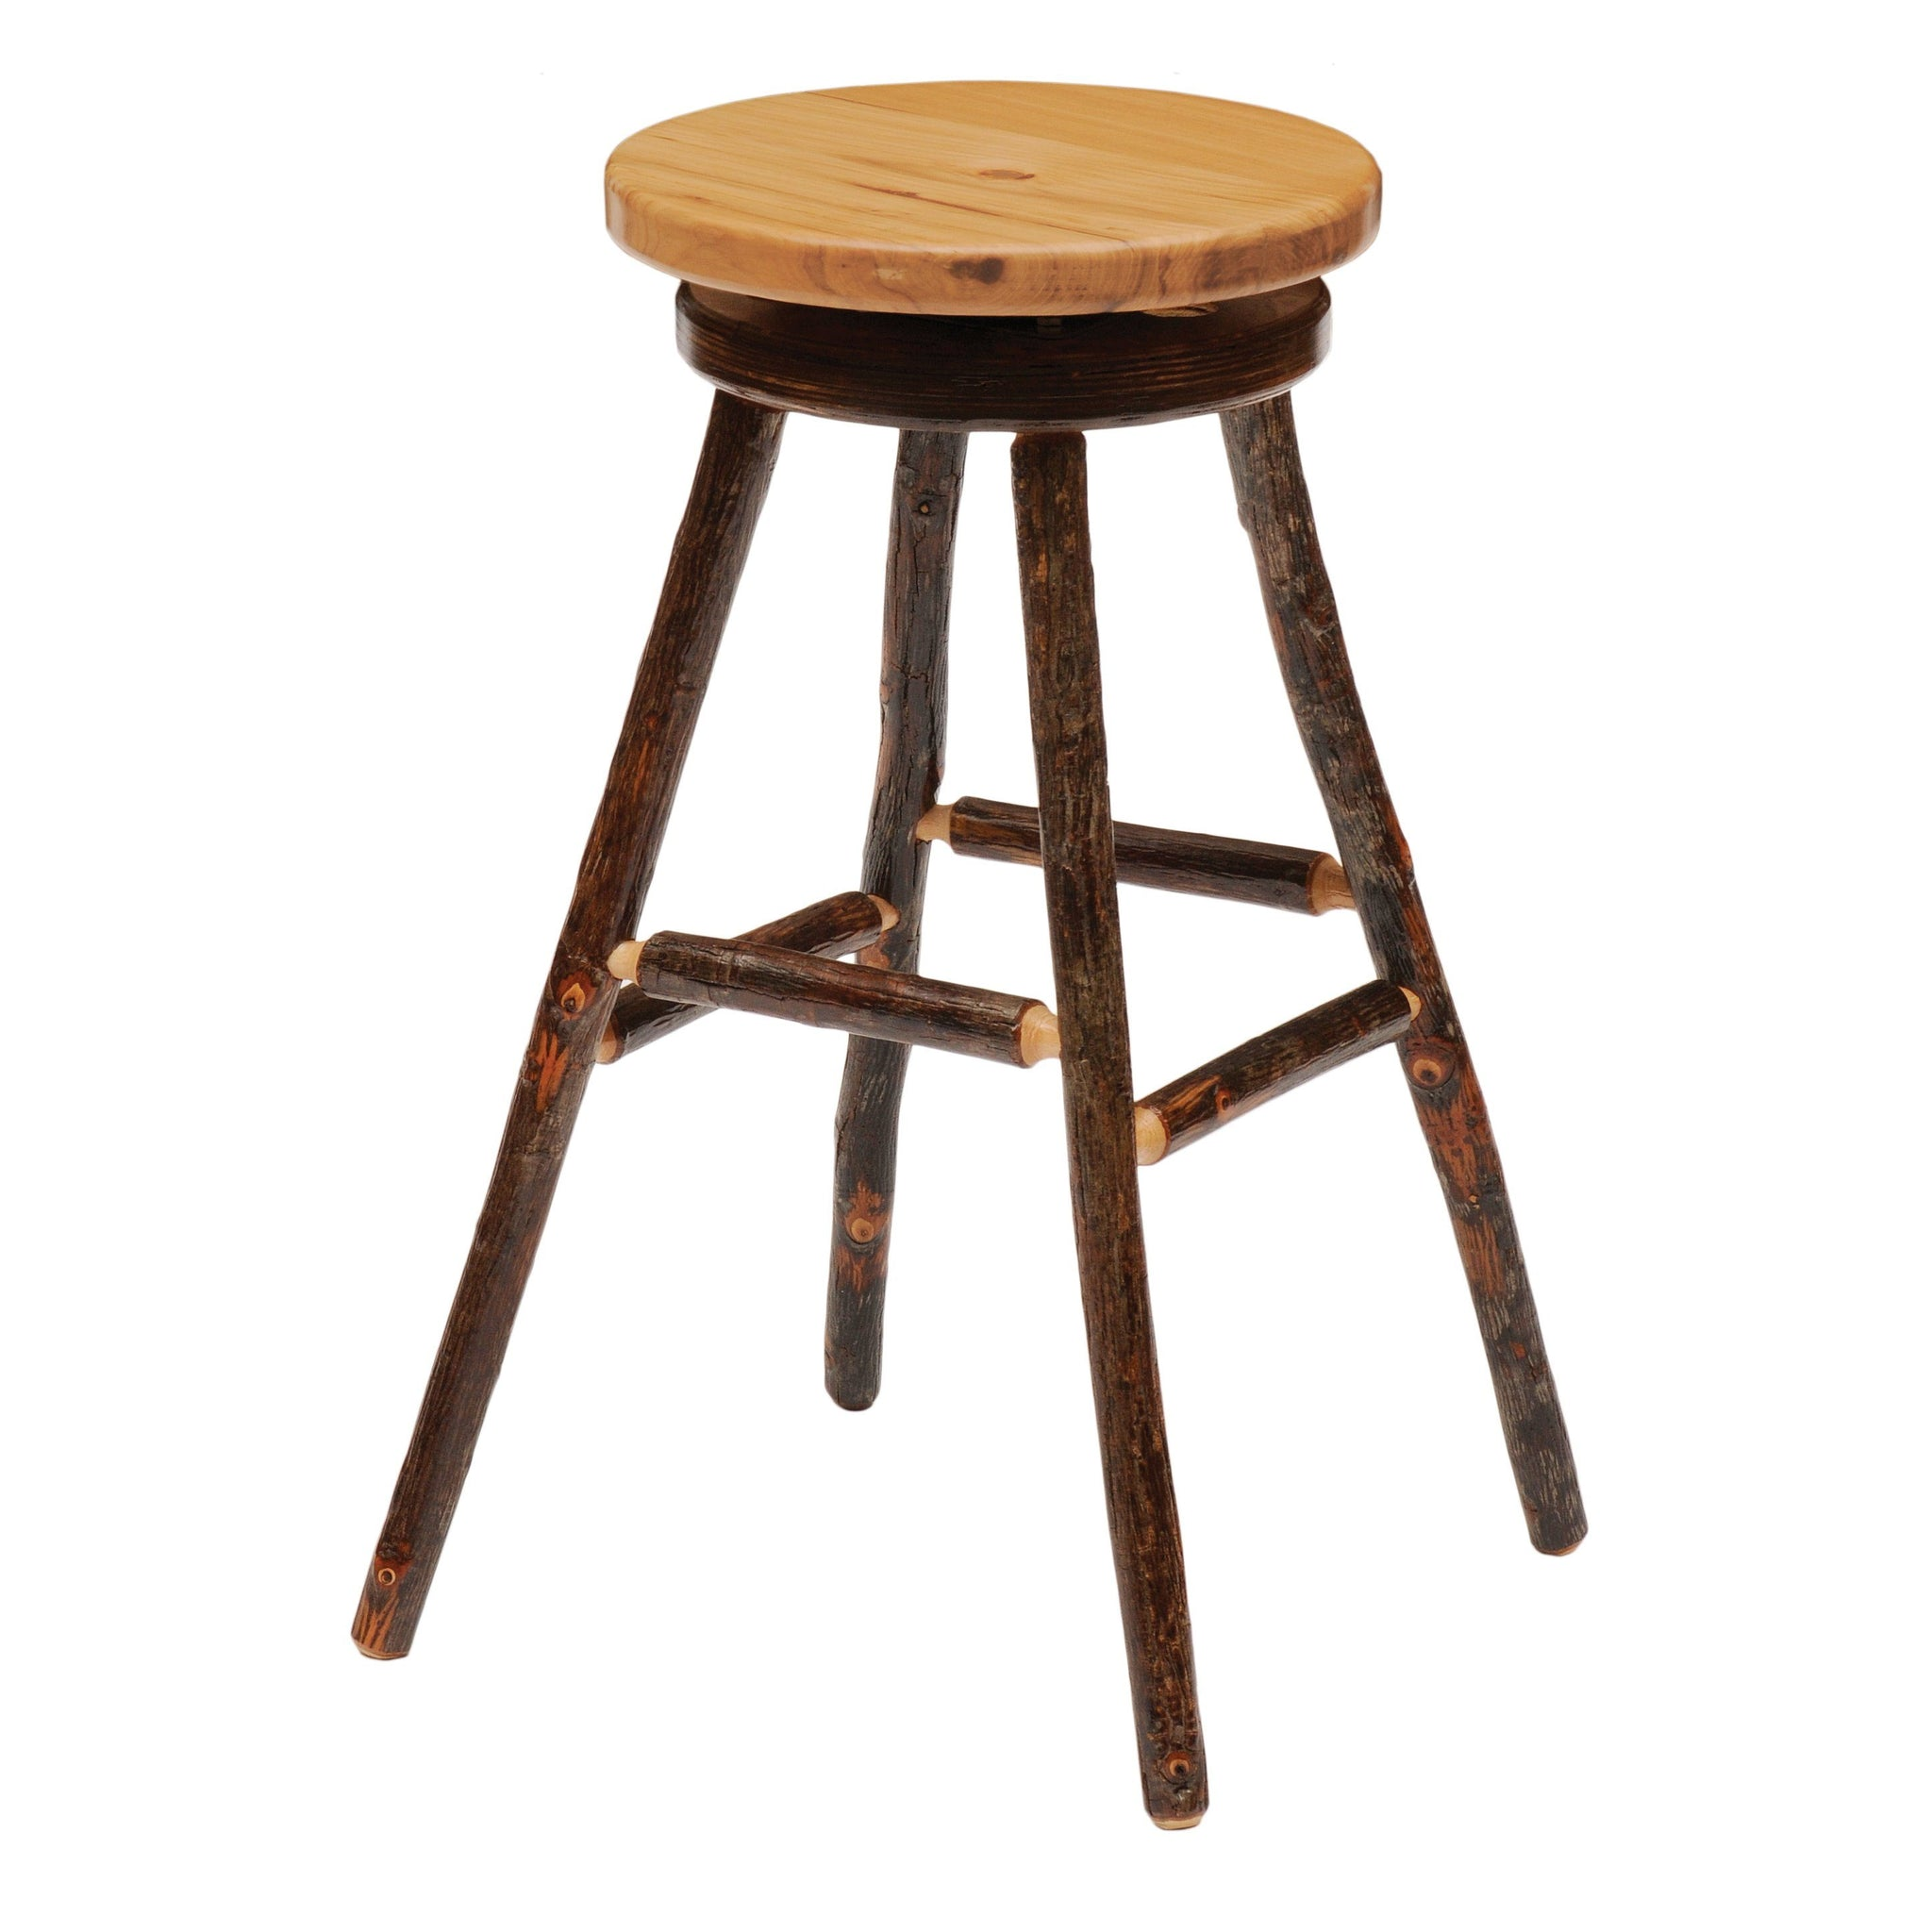 Natural Hickory Log Round Swivel Counter Stool Wood Seat